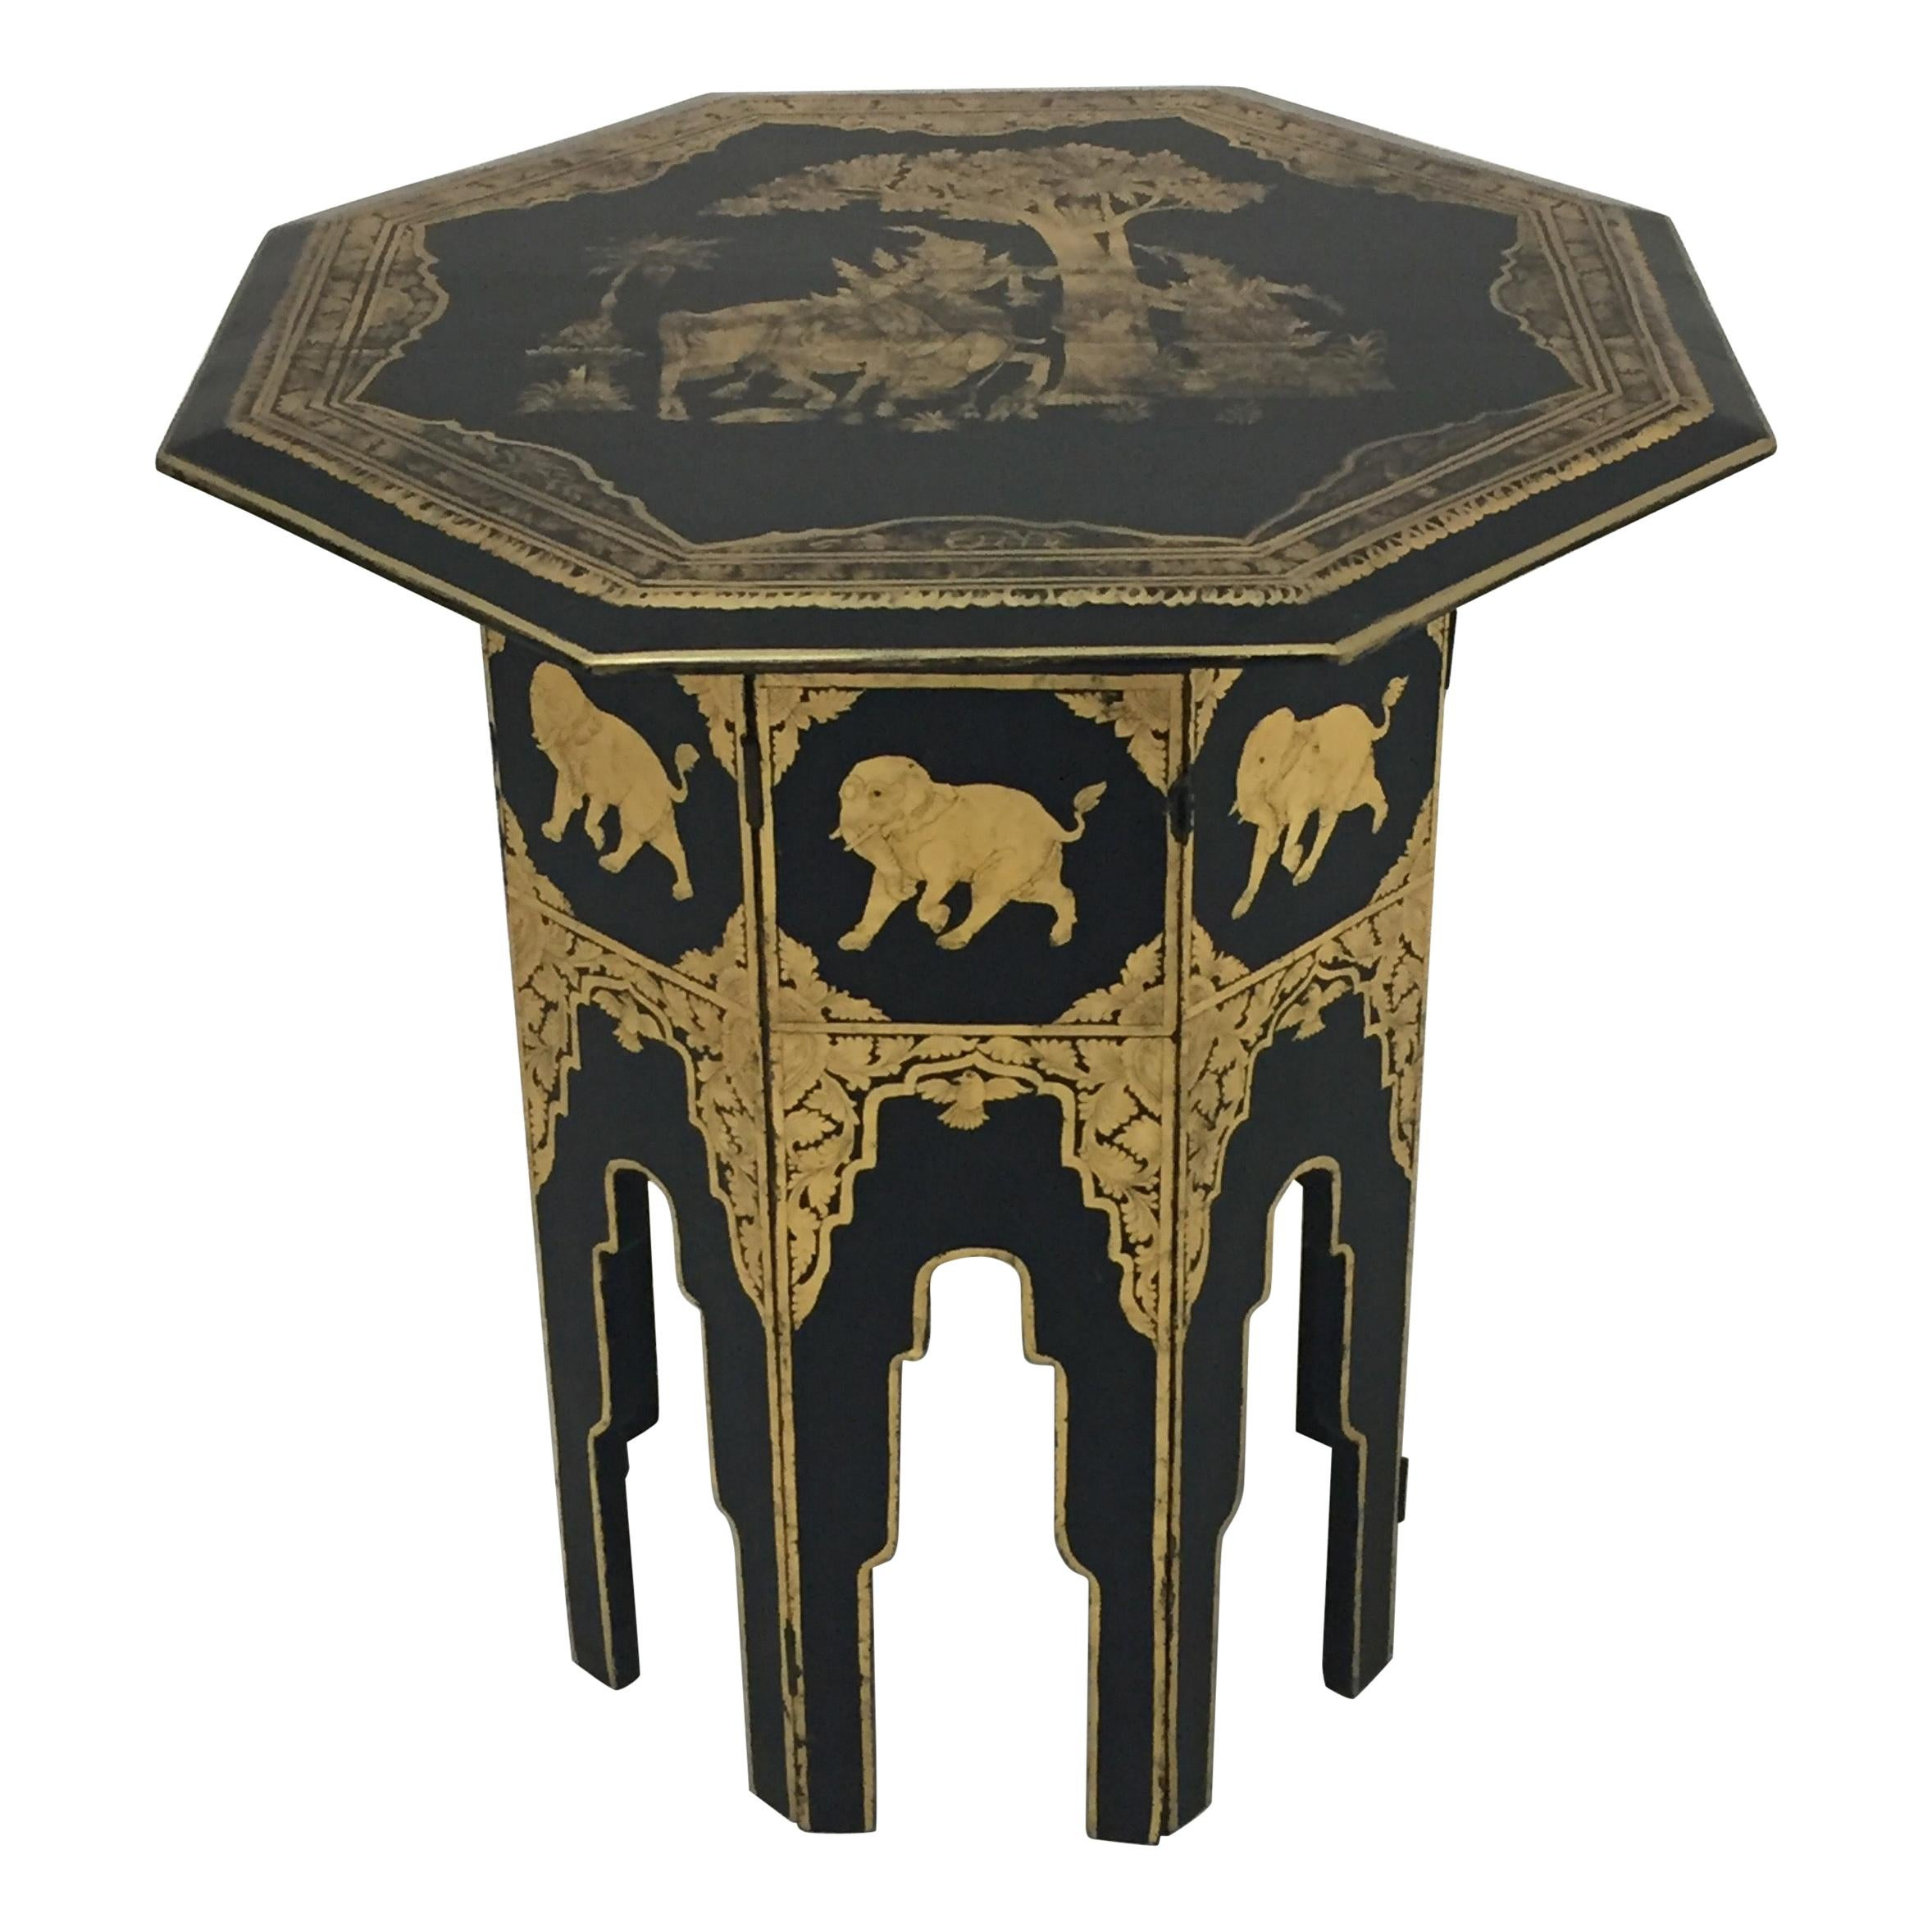 Anglo-Indian Burmese Black and Gold Octagonal End Table